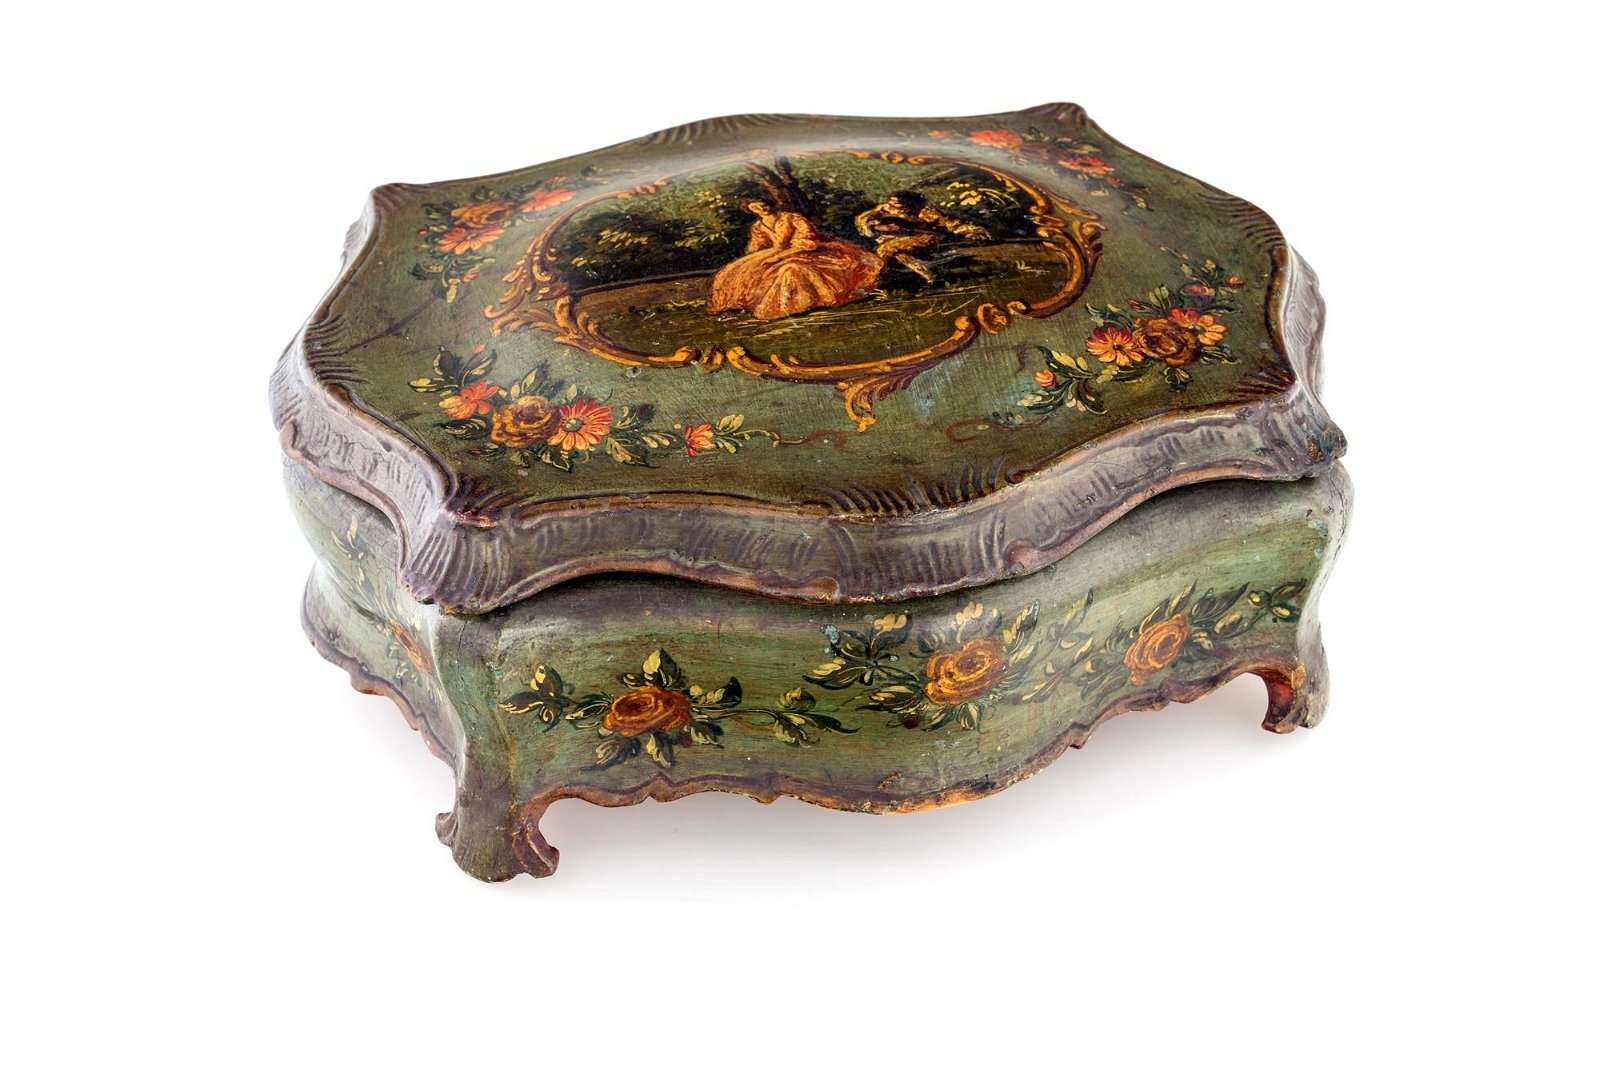 Venetian lacquered wood box from 19th century